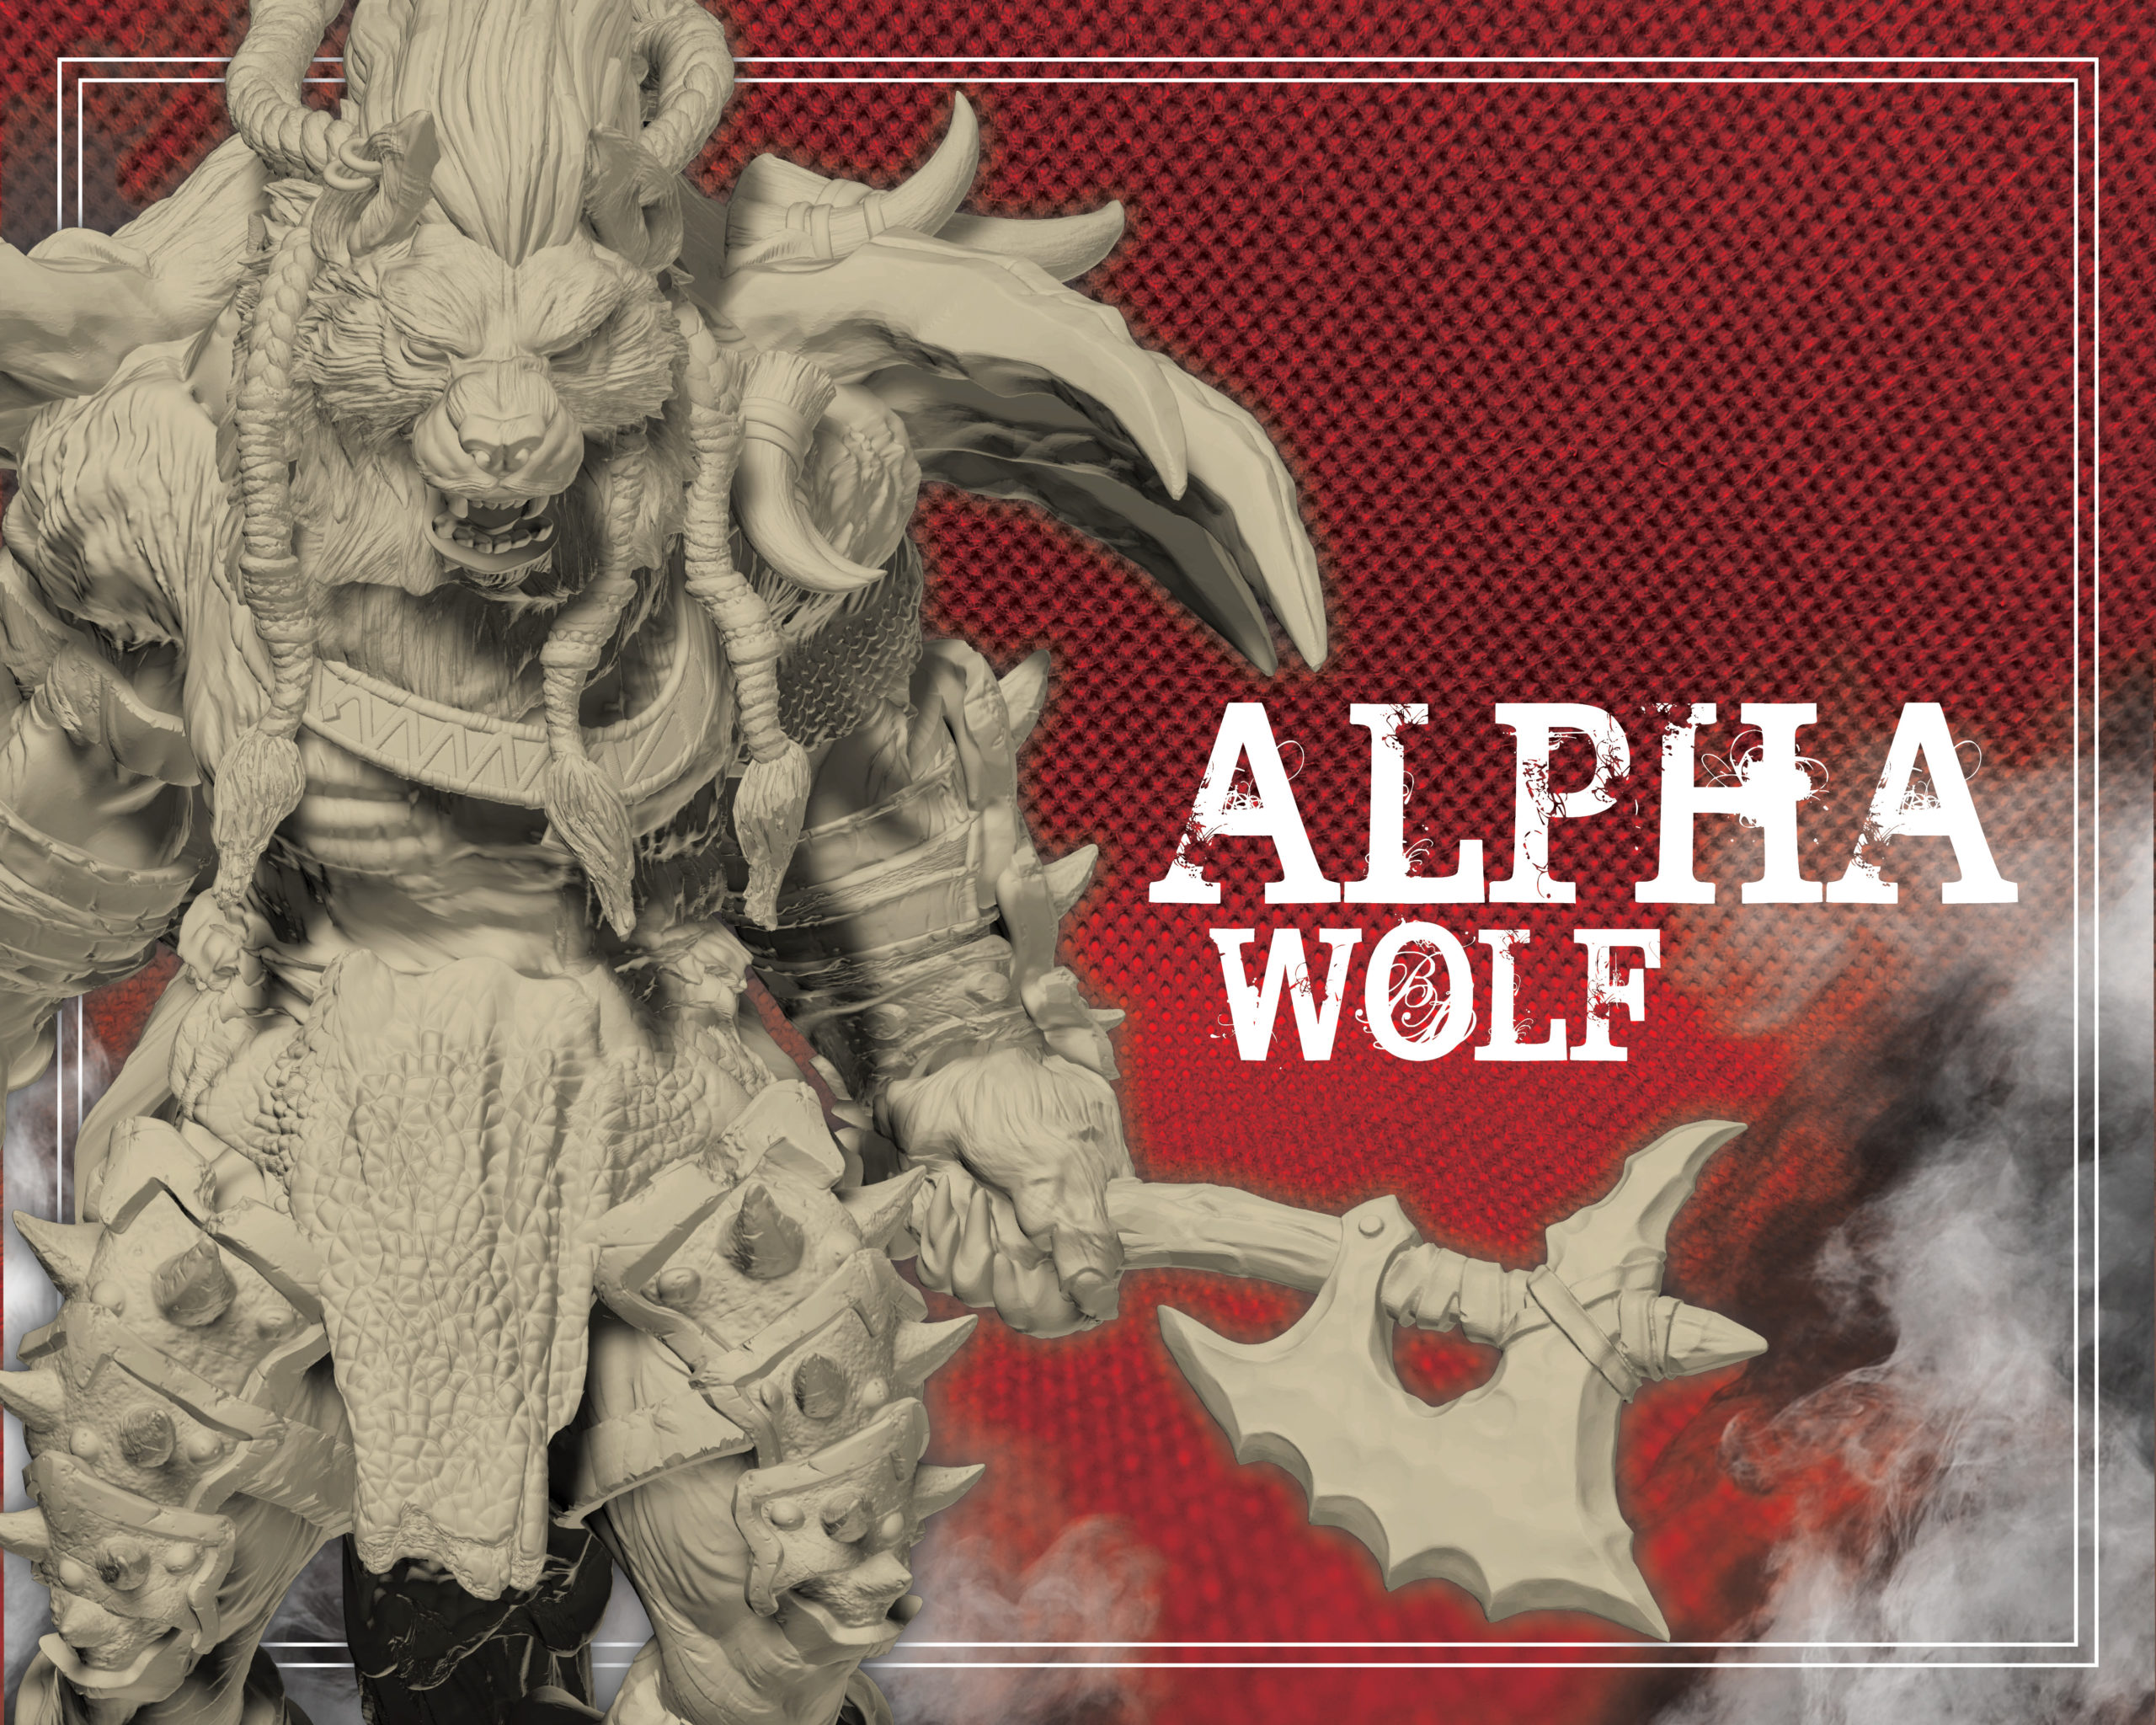 tier alpha wolf wolfmaker3d gift subscribe patreon